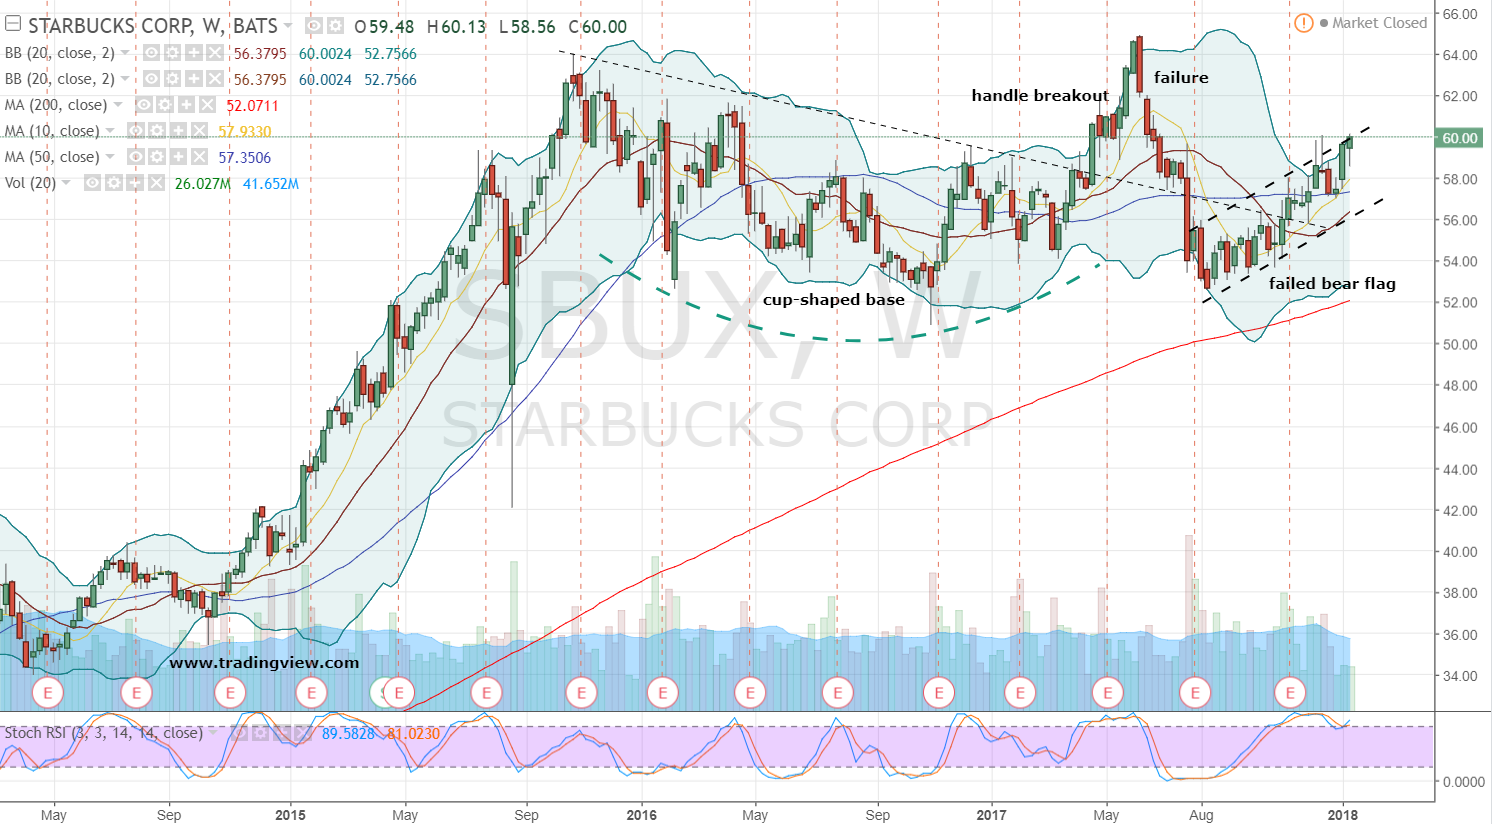 Sells 5182 Shares of Starbucks Co. (SBUX)